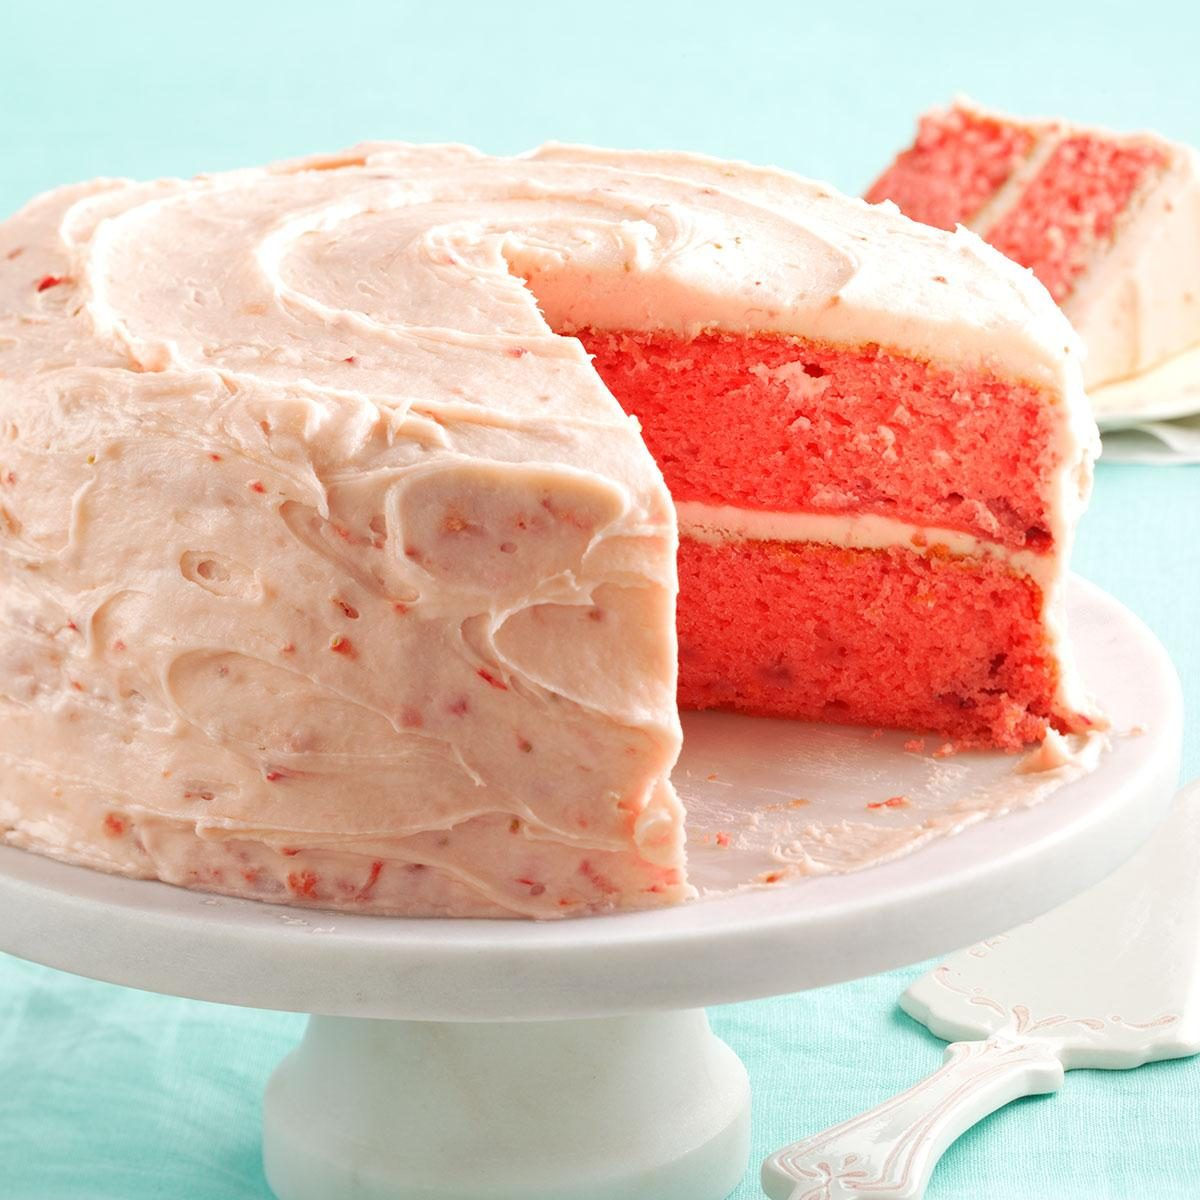 strawberry jello cake mamaw emily s strawberry cake recipe taste of home 7755